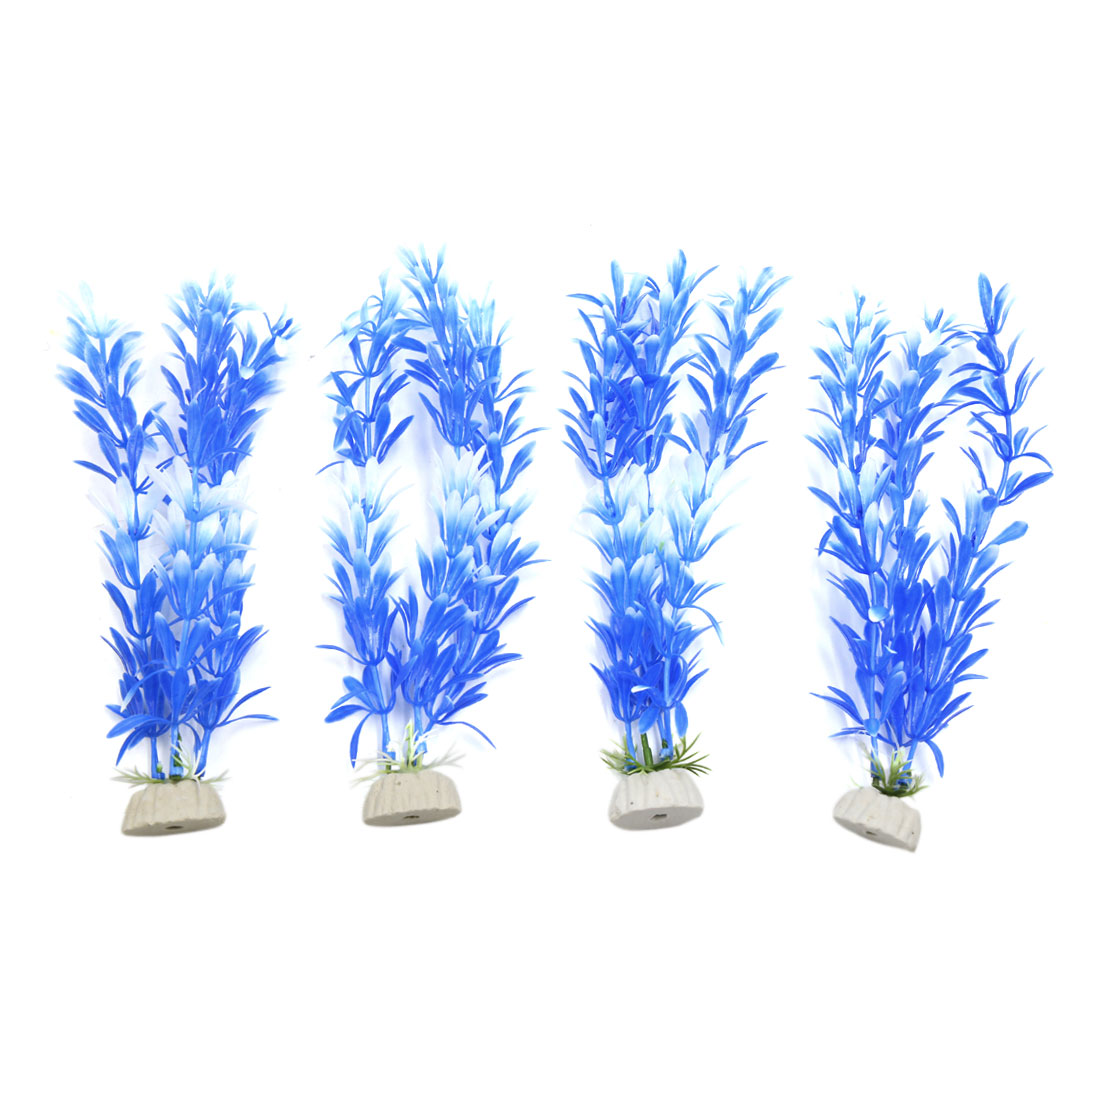 4pcs Blue Plastic Aquarium Plants Fish Tank Water Plant Decorative Ornament